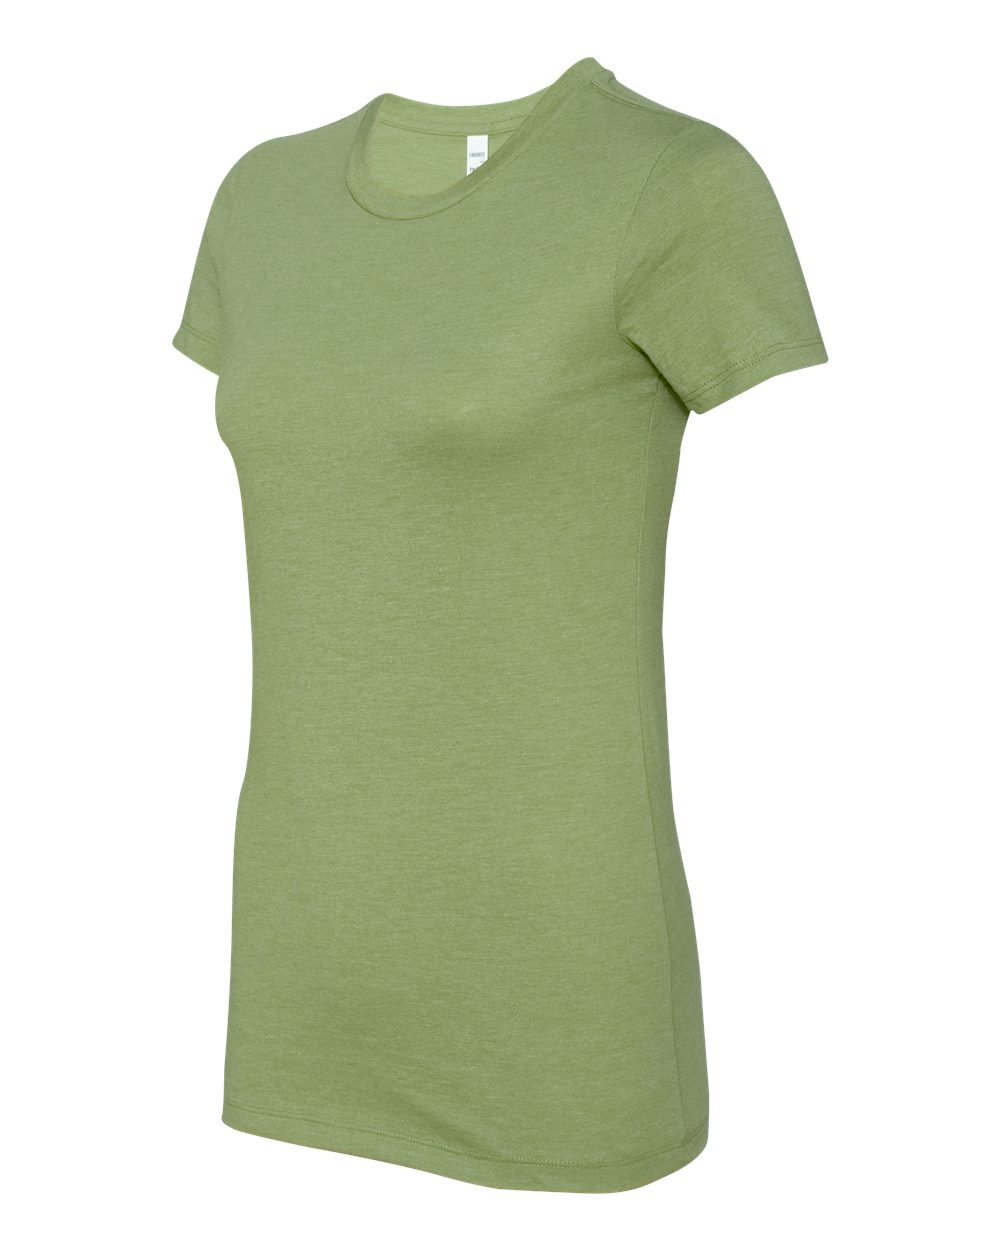 Bella-Canvas-Womens-The-Favorite-T-Shirt-6004-Size-S-2XL thumbnail 68